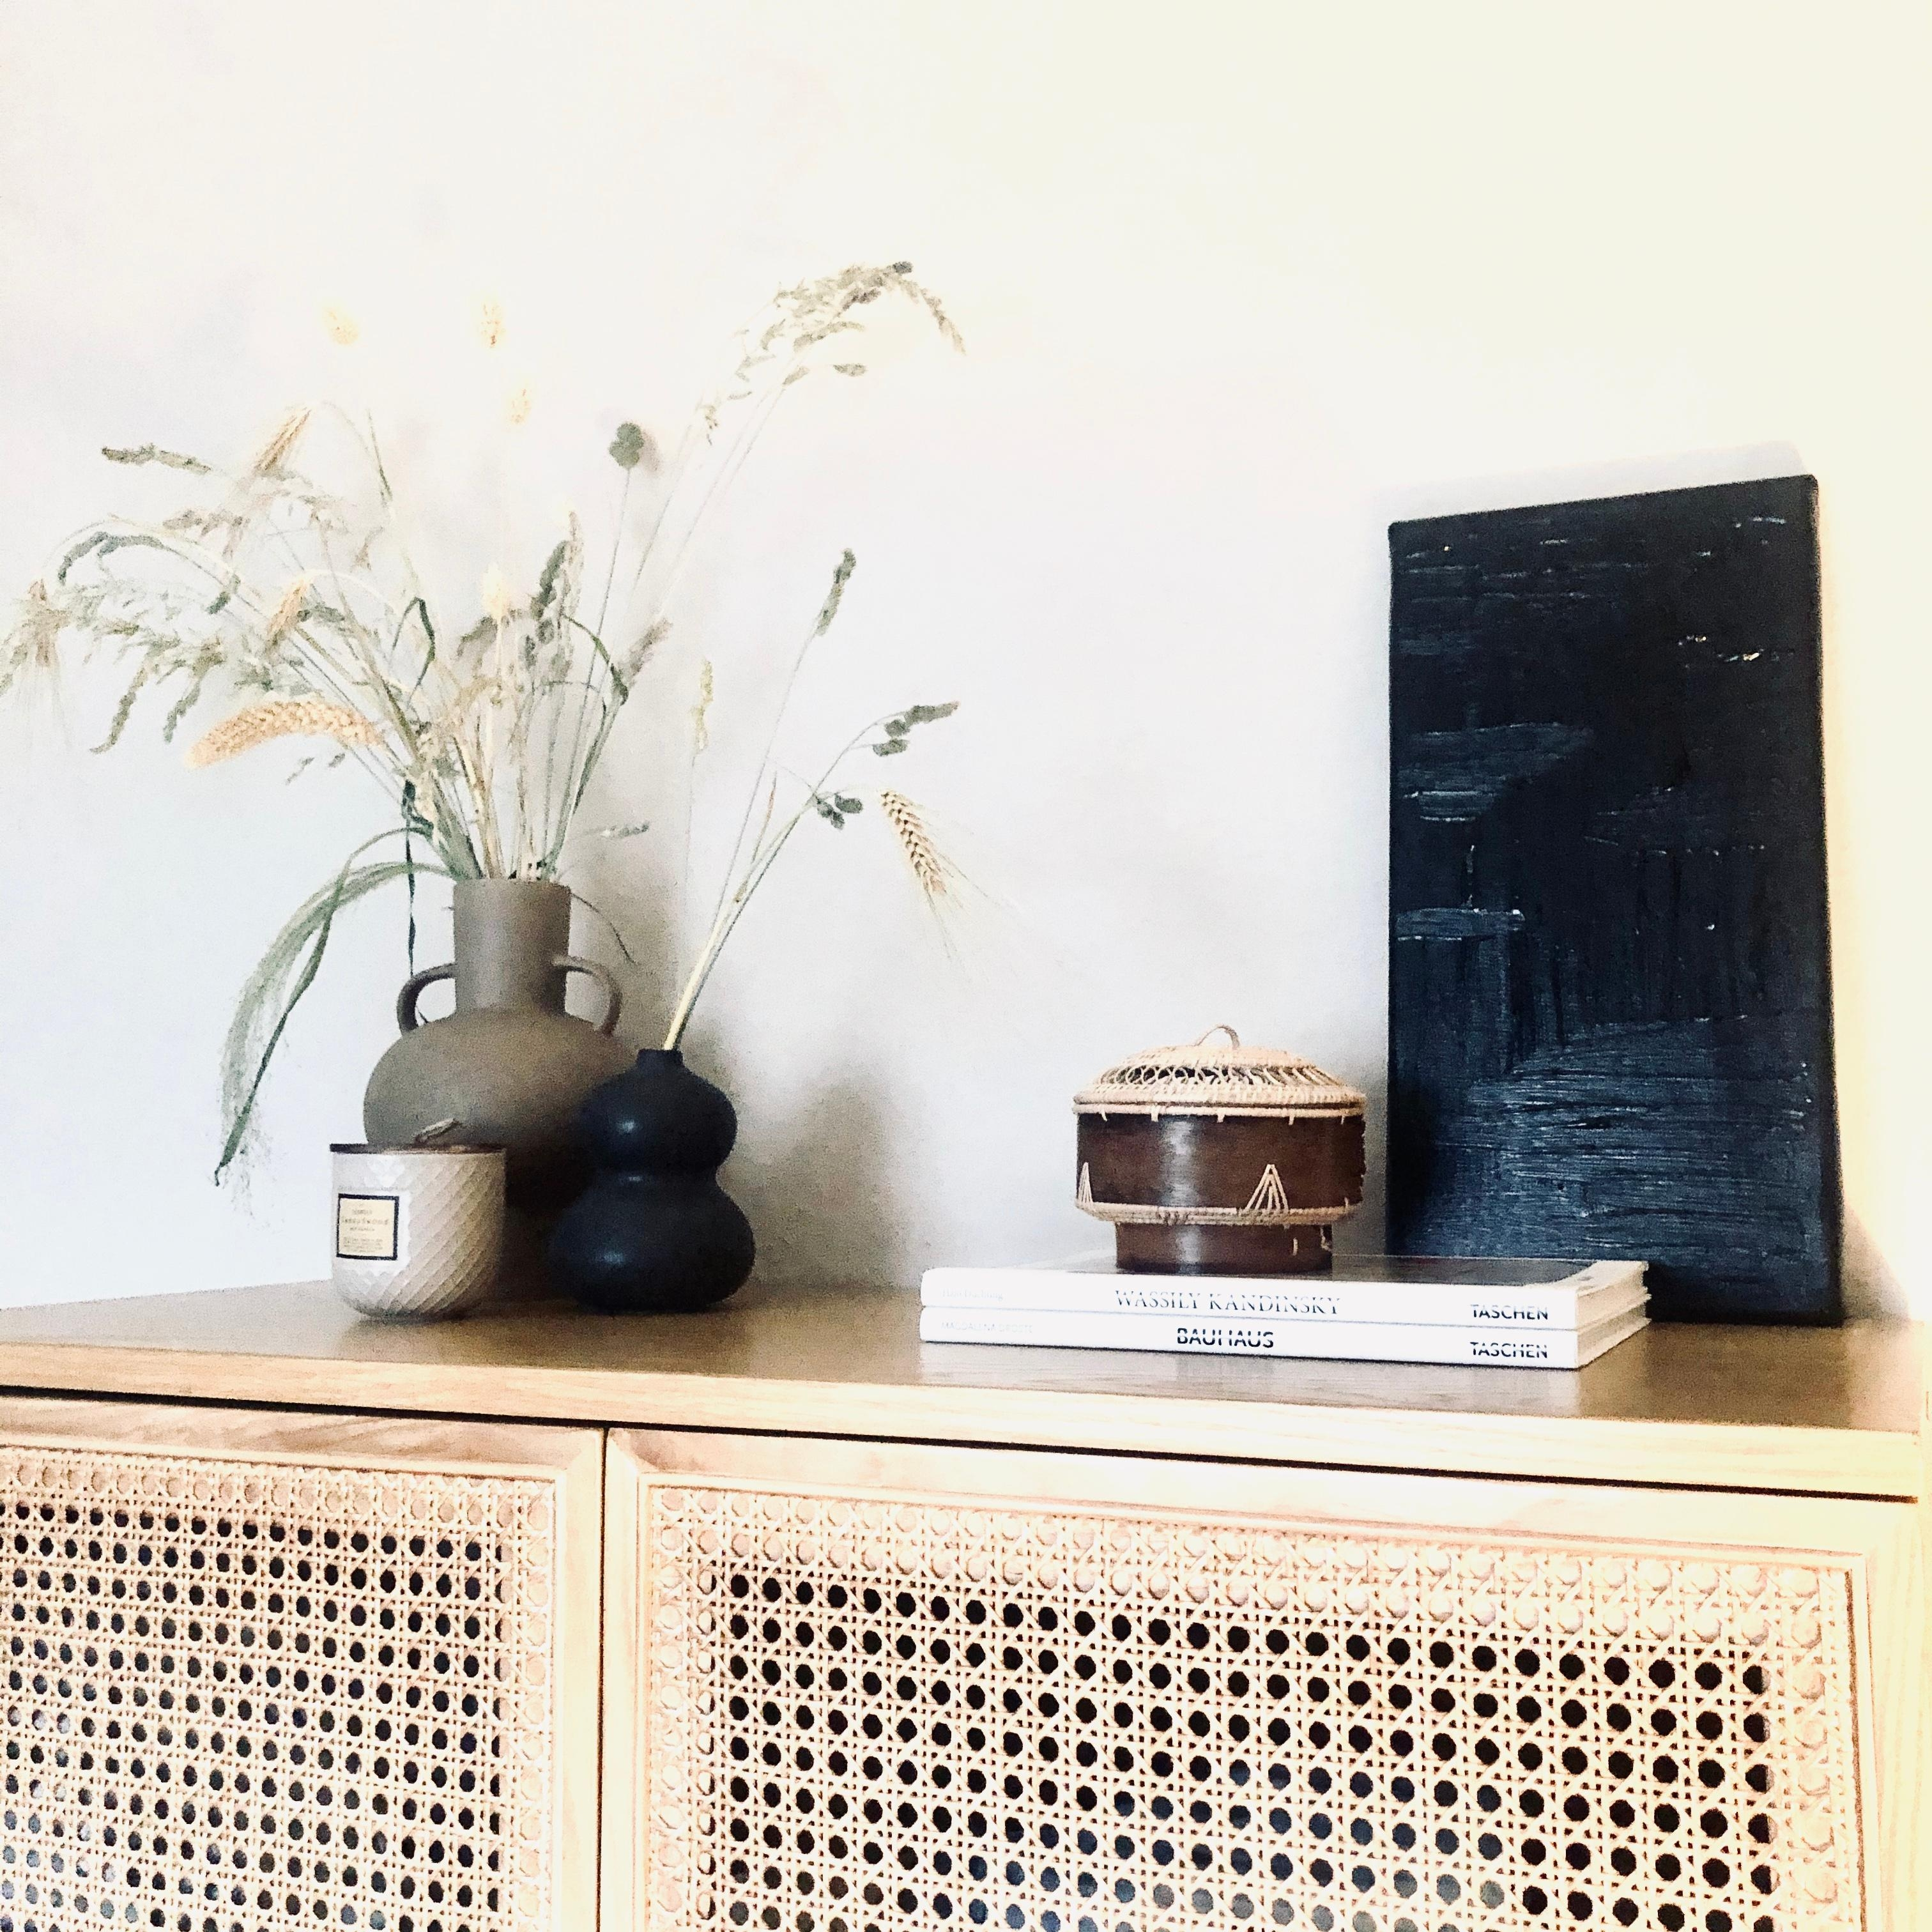 Fresh Art and Athen books - in love with my new #couch highboard